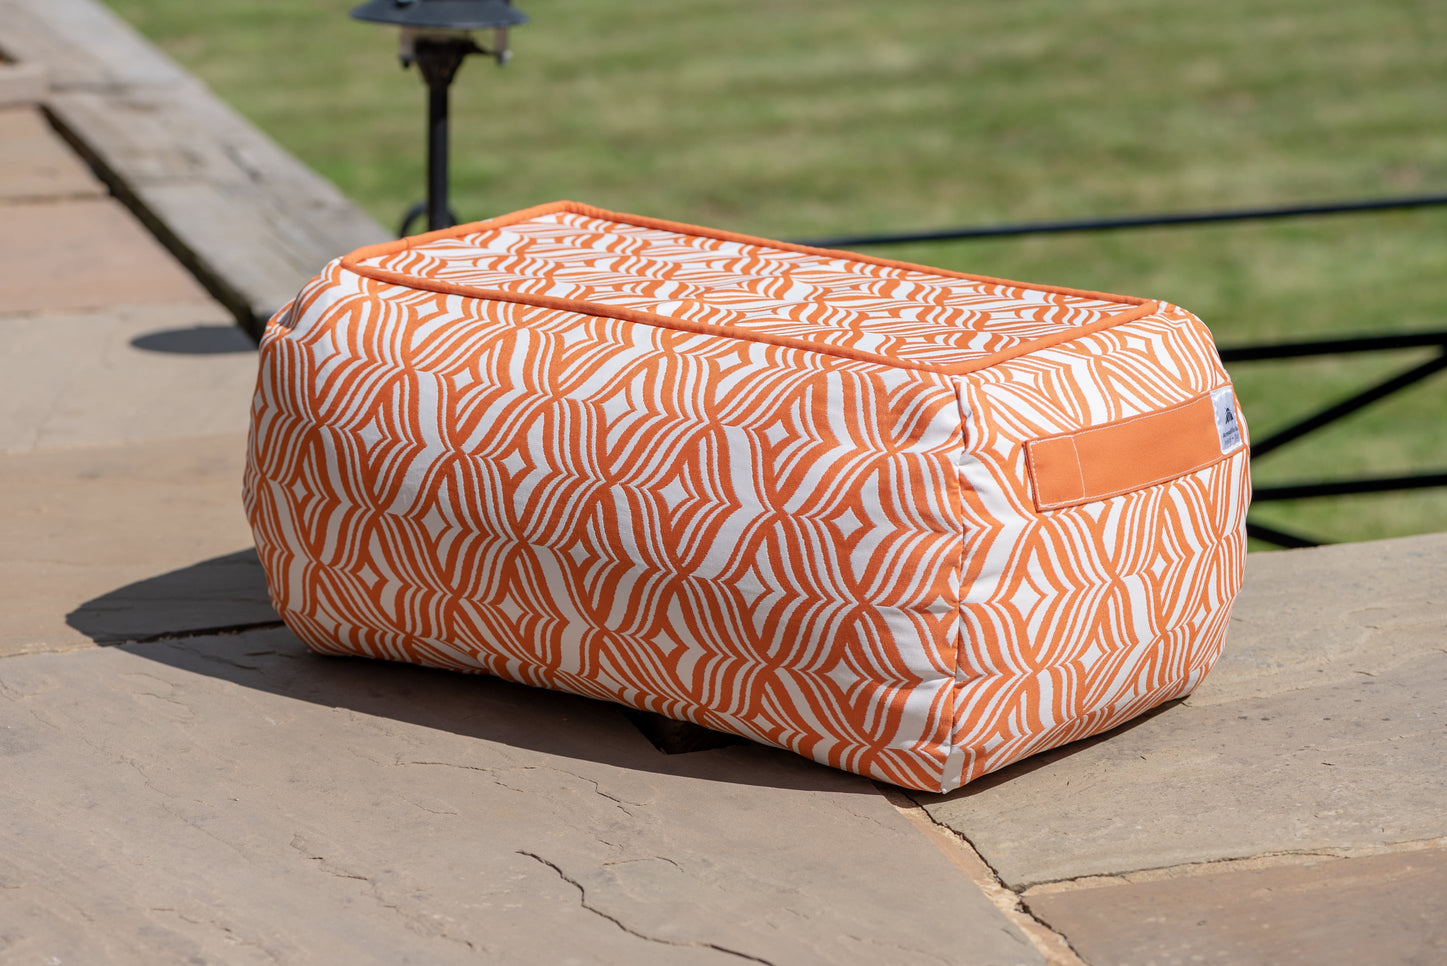 Armadillo Sun bean bag table in orange and white tulip pattern